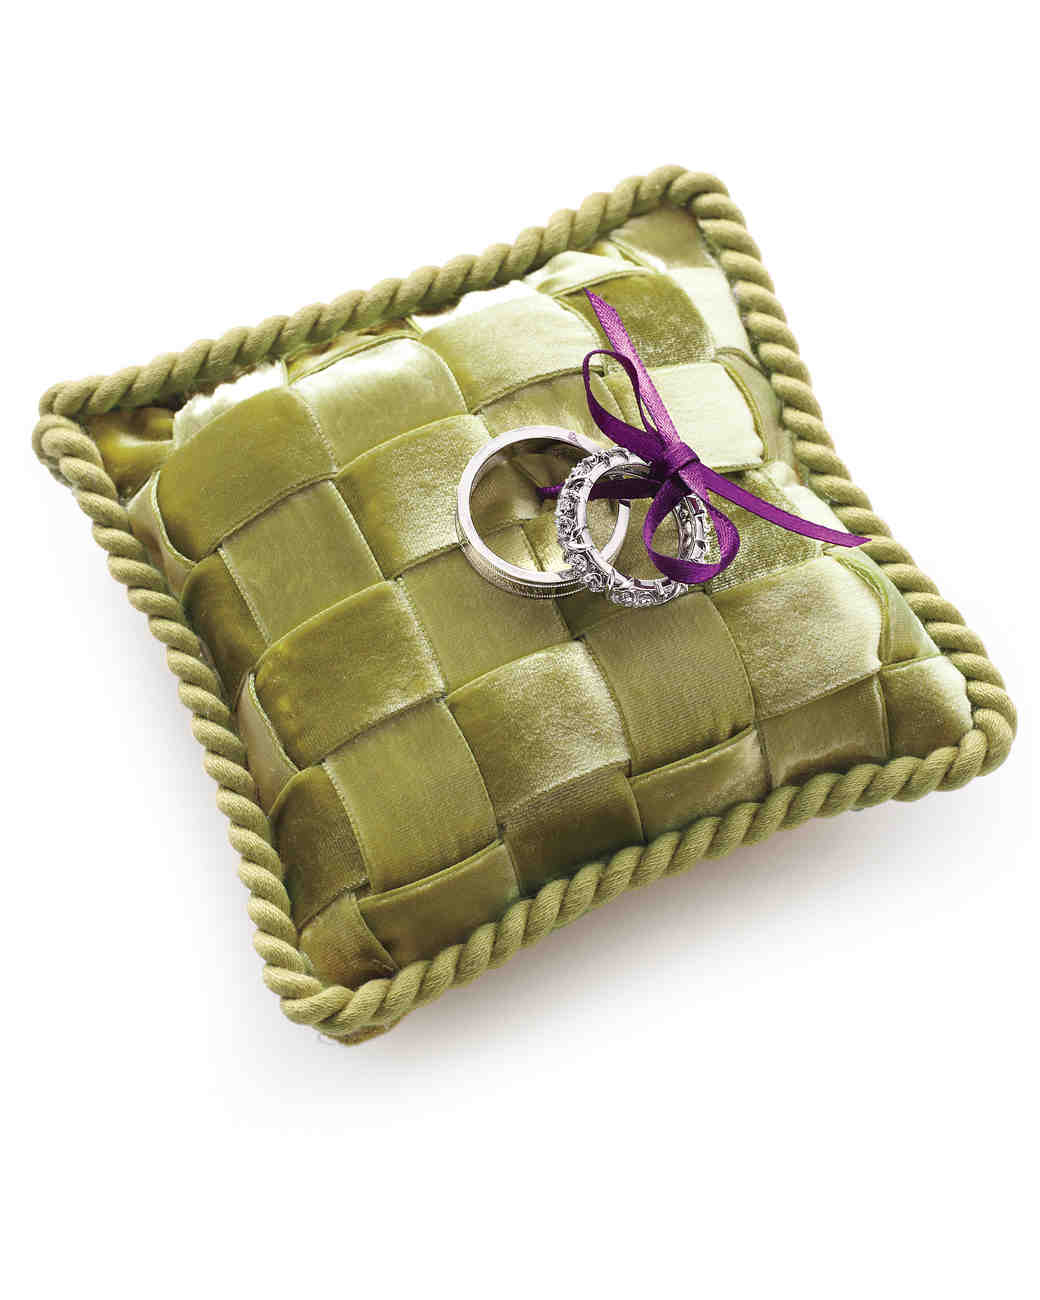 Ring Bearer Pillow Ideas You Can Make On Your Own Martha Stewart